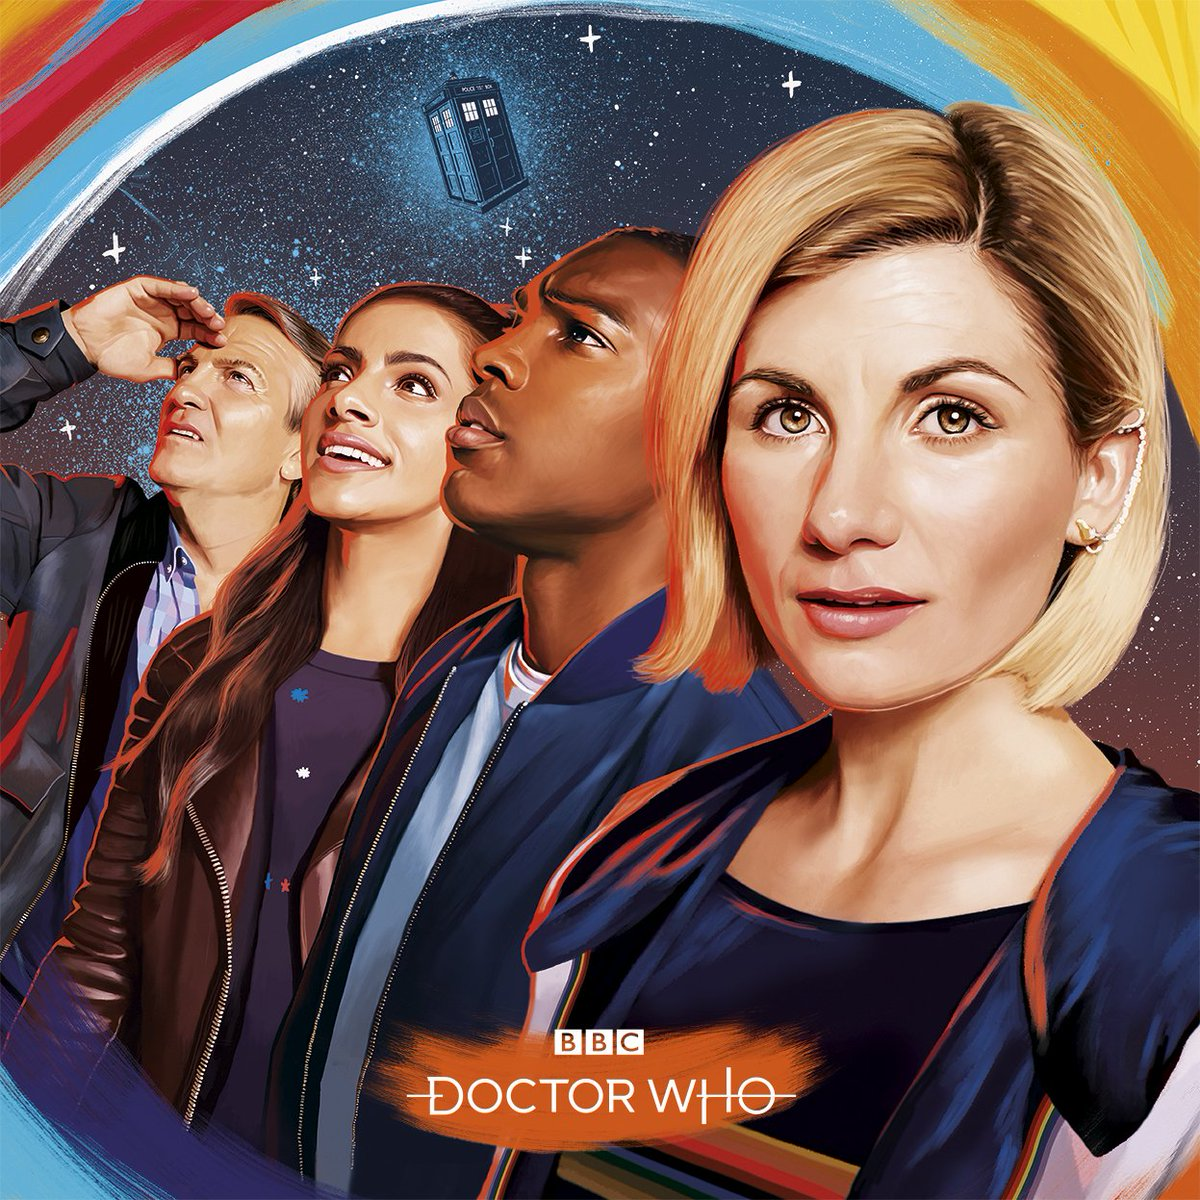 The new team. #DoctorWho